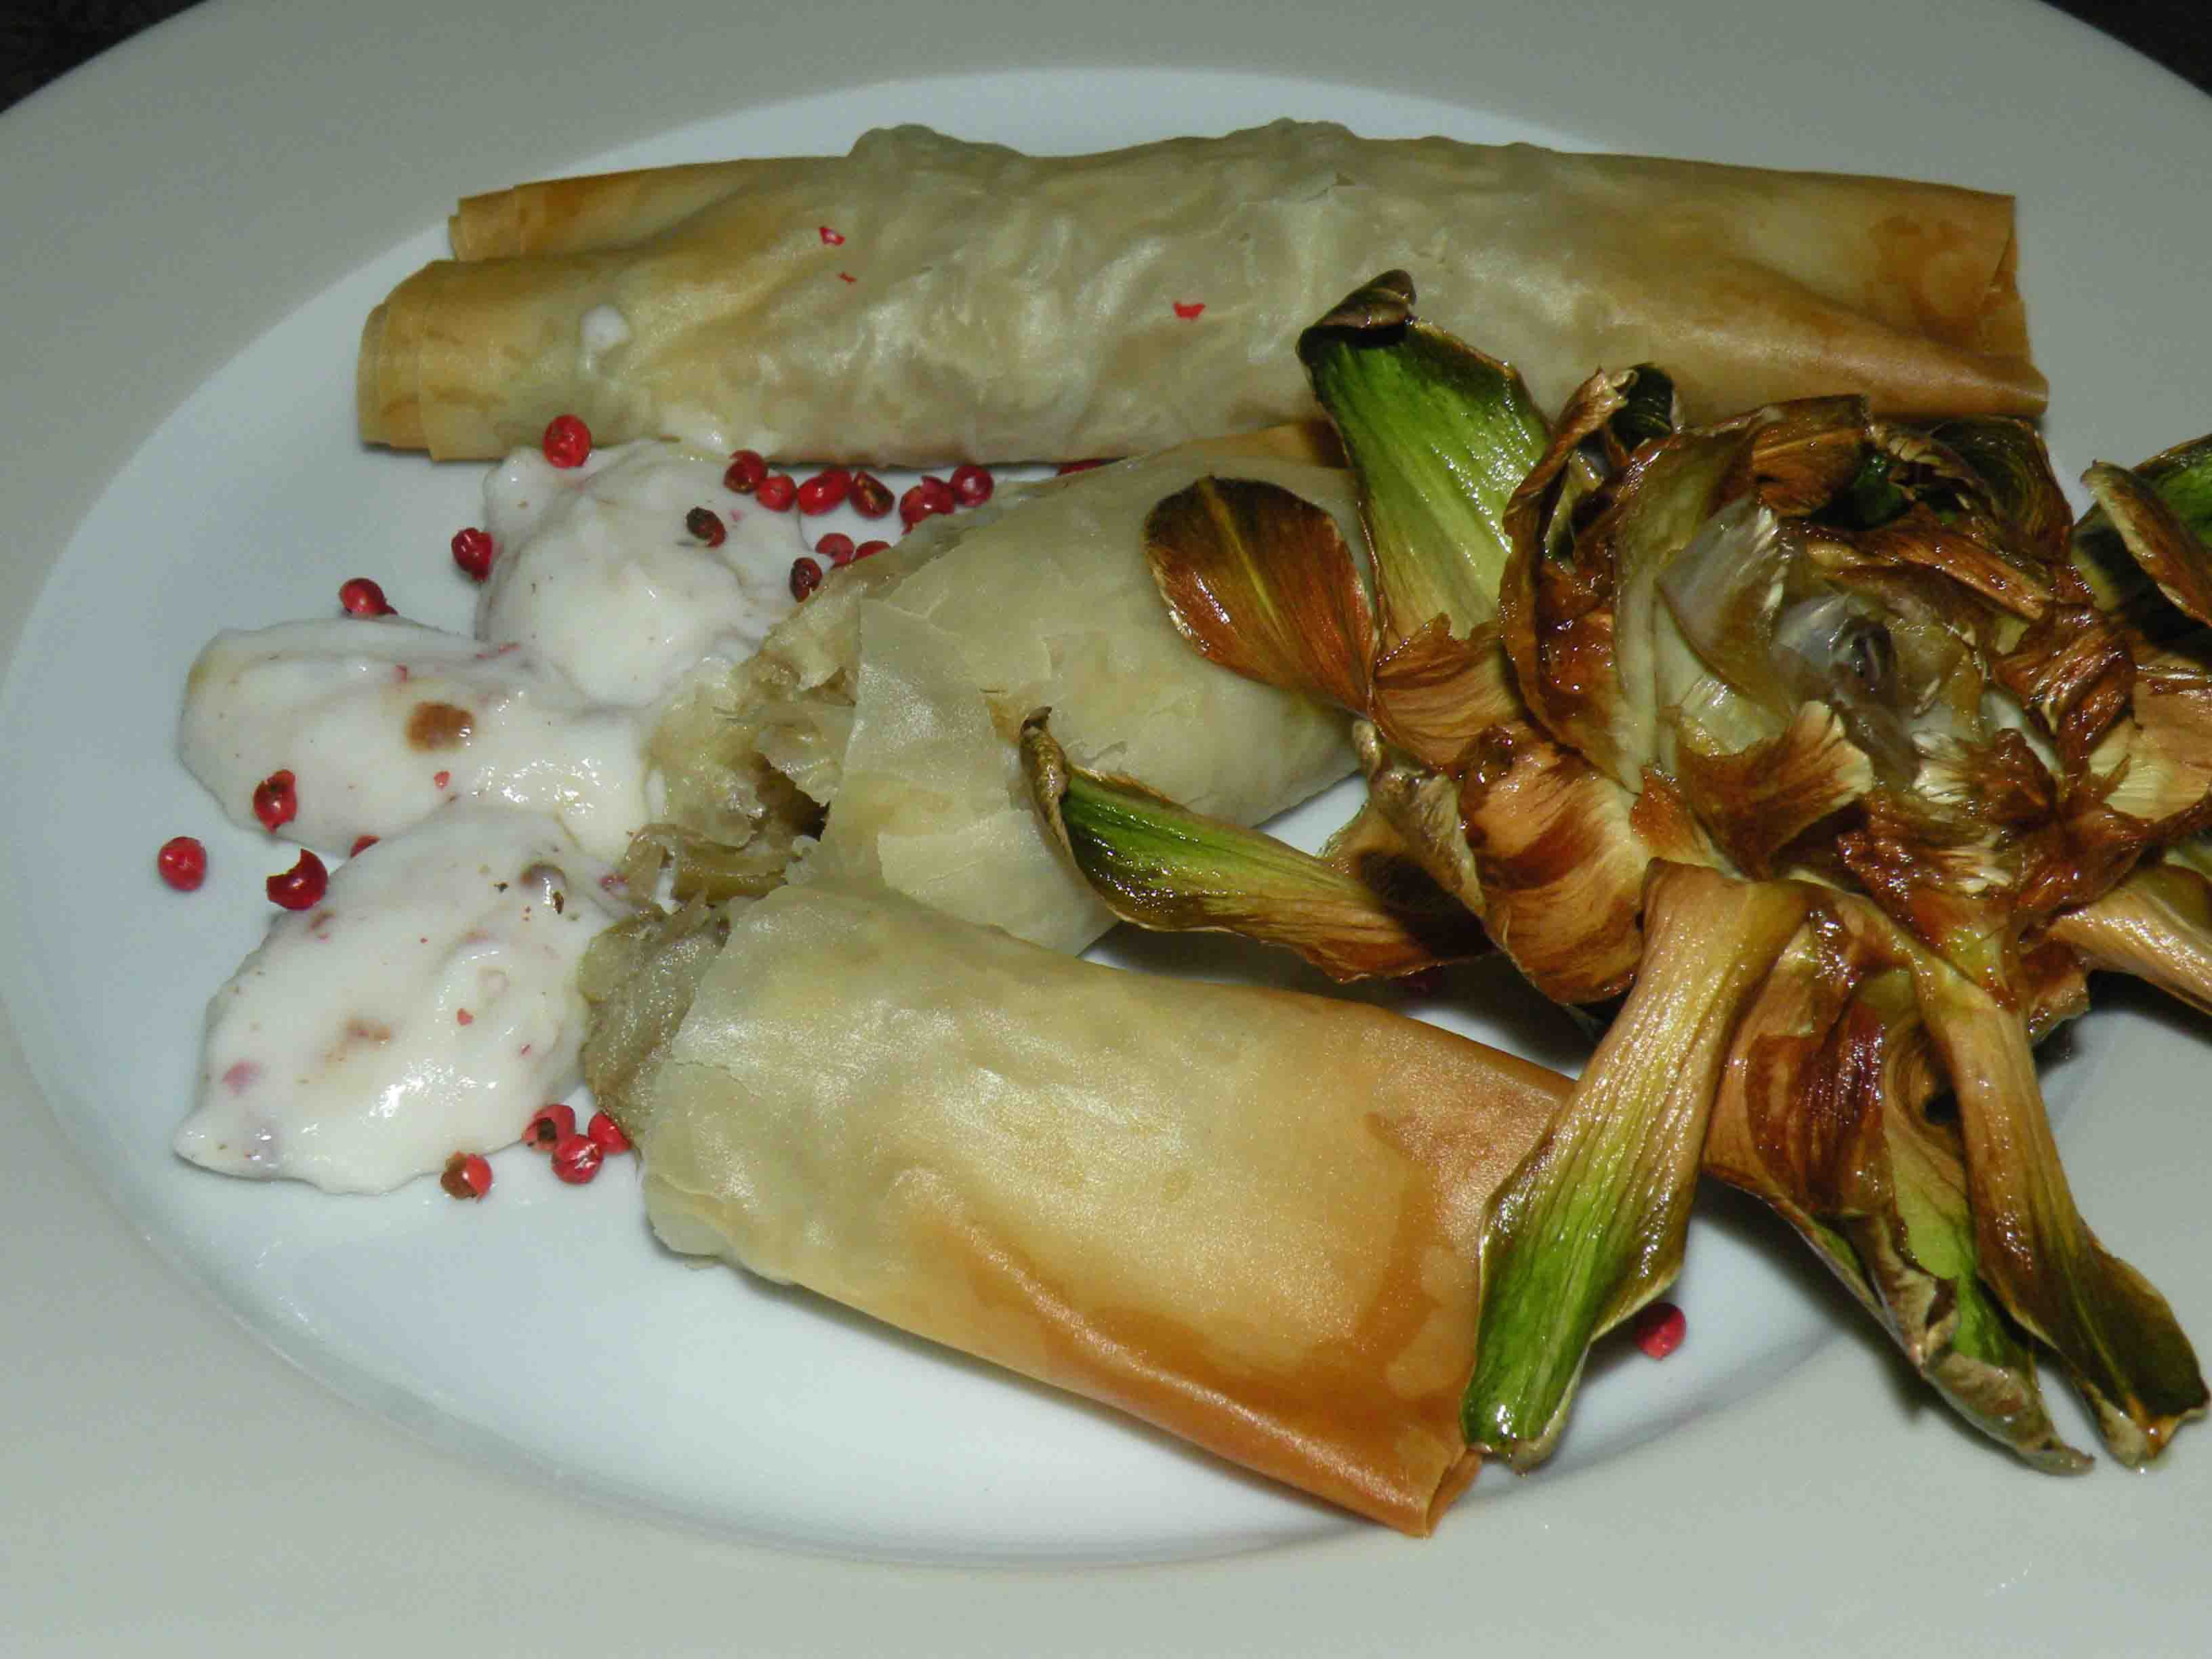 Rolls of phyllo dough filled with perch artichokes and zucchini with cream and pink pepper